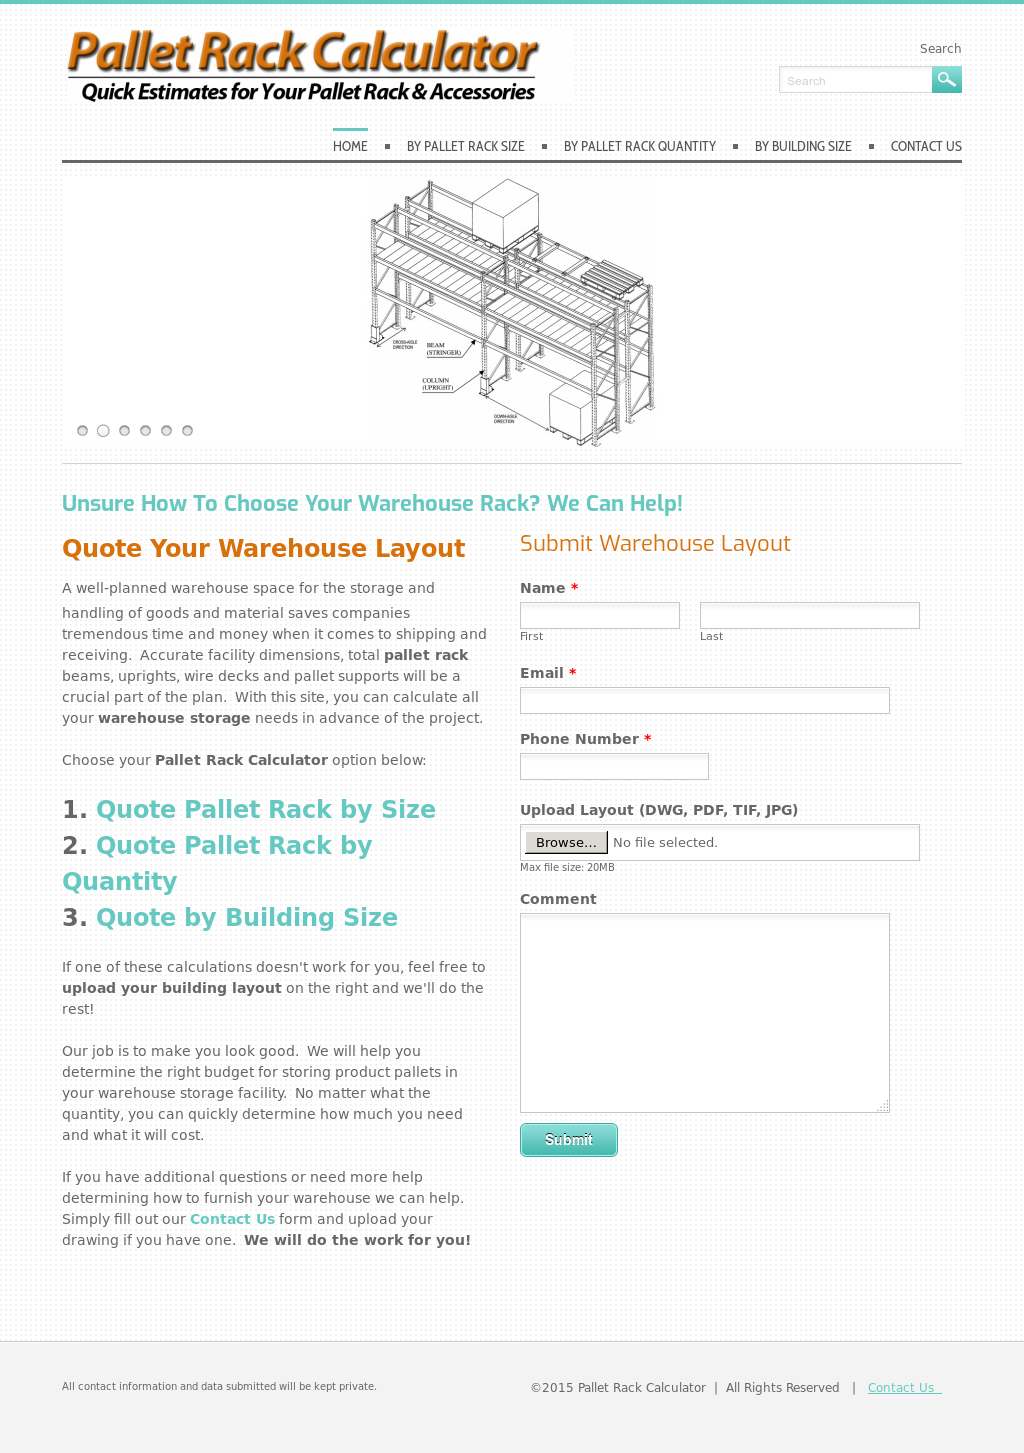 Pallet Rack Calculator Competitors, Revenue and Employees